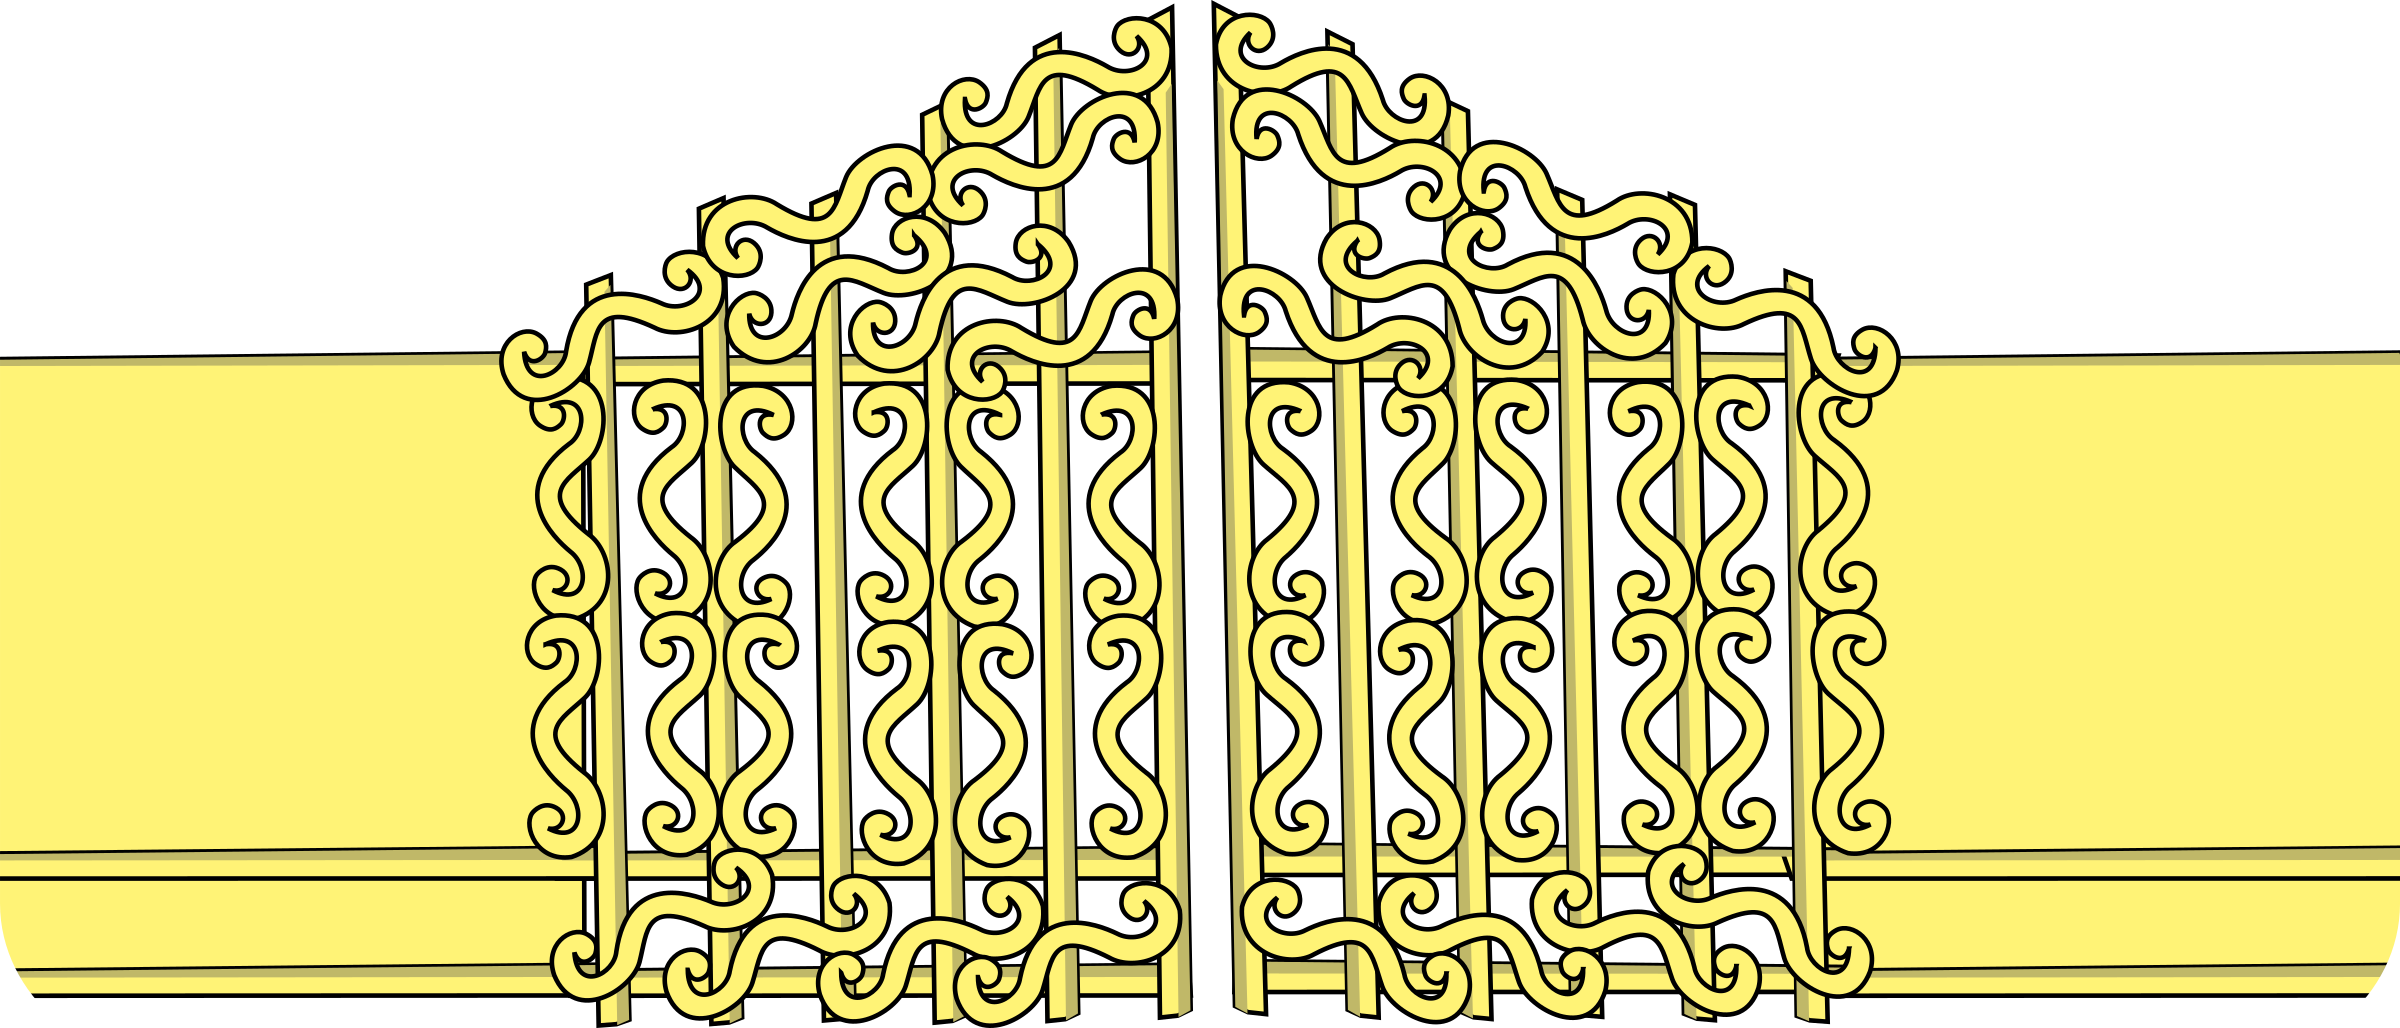 Heaven clipart pearly gates Clipart Gates Pearly Gates Pearly